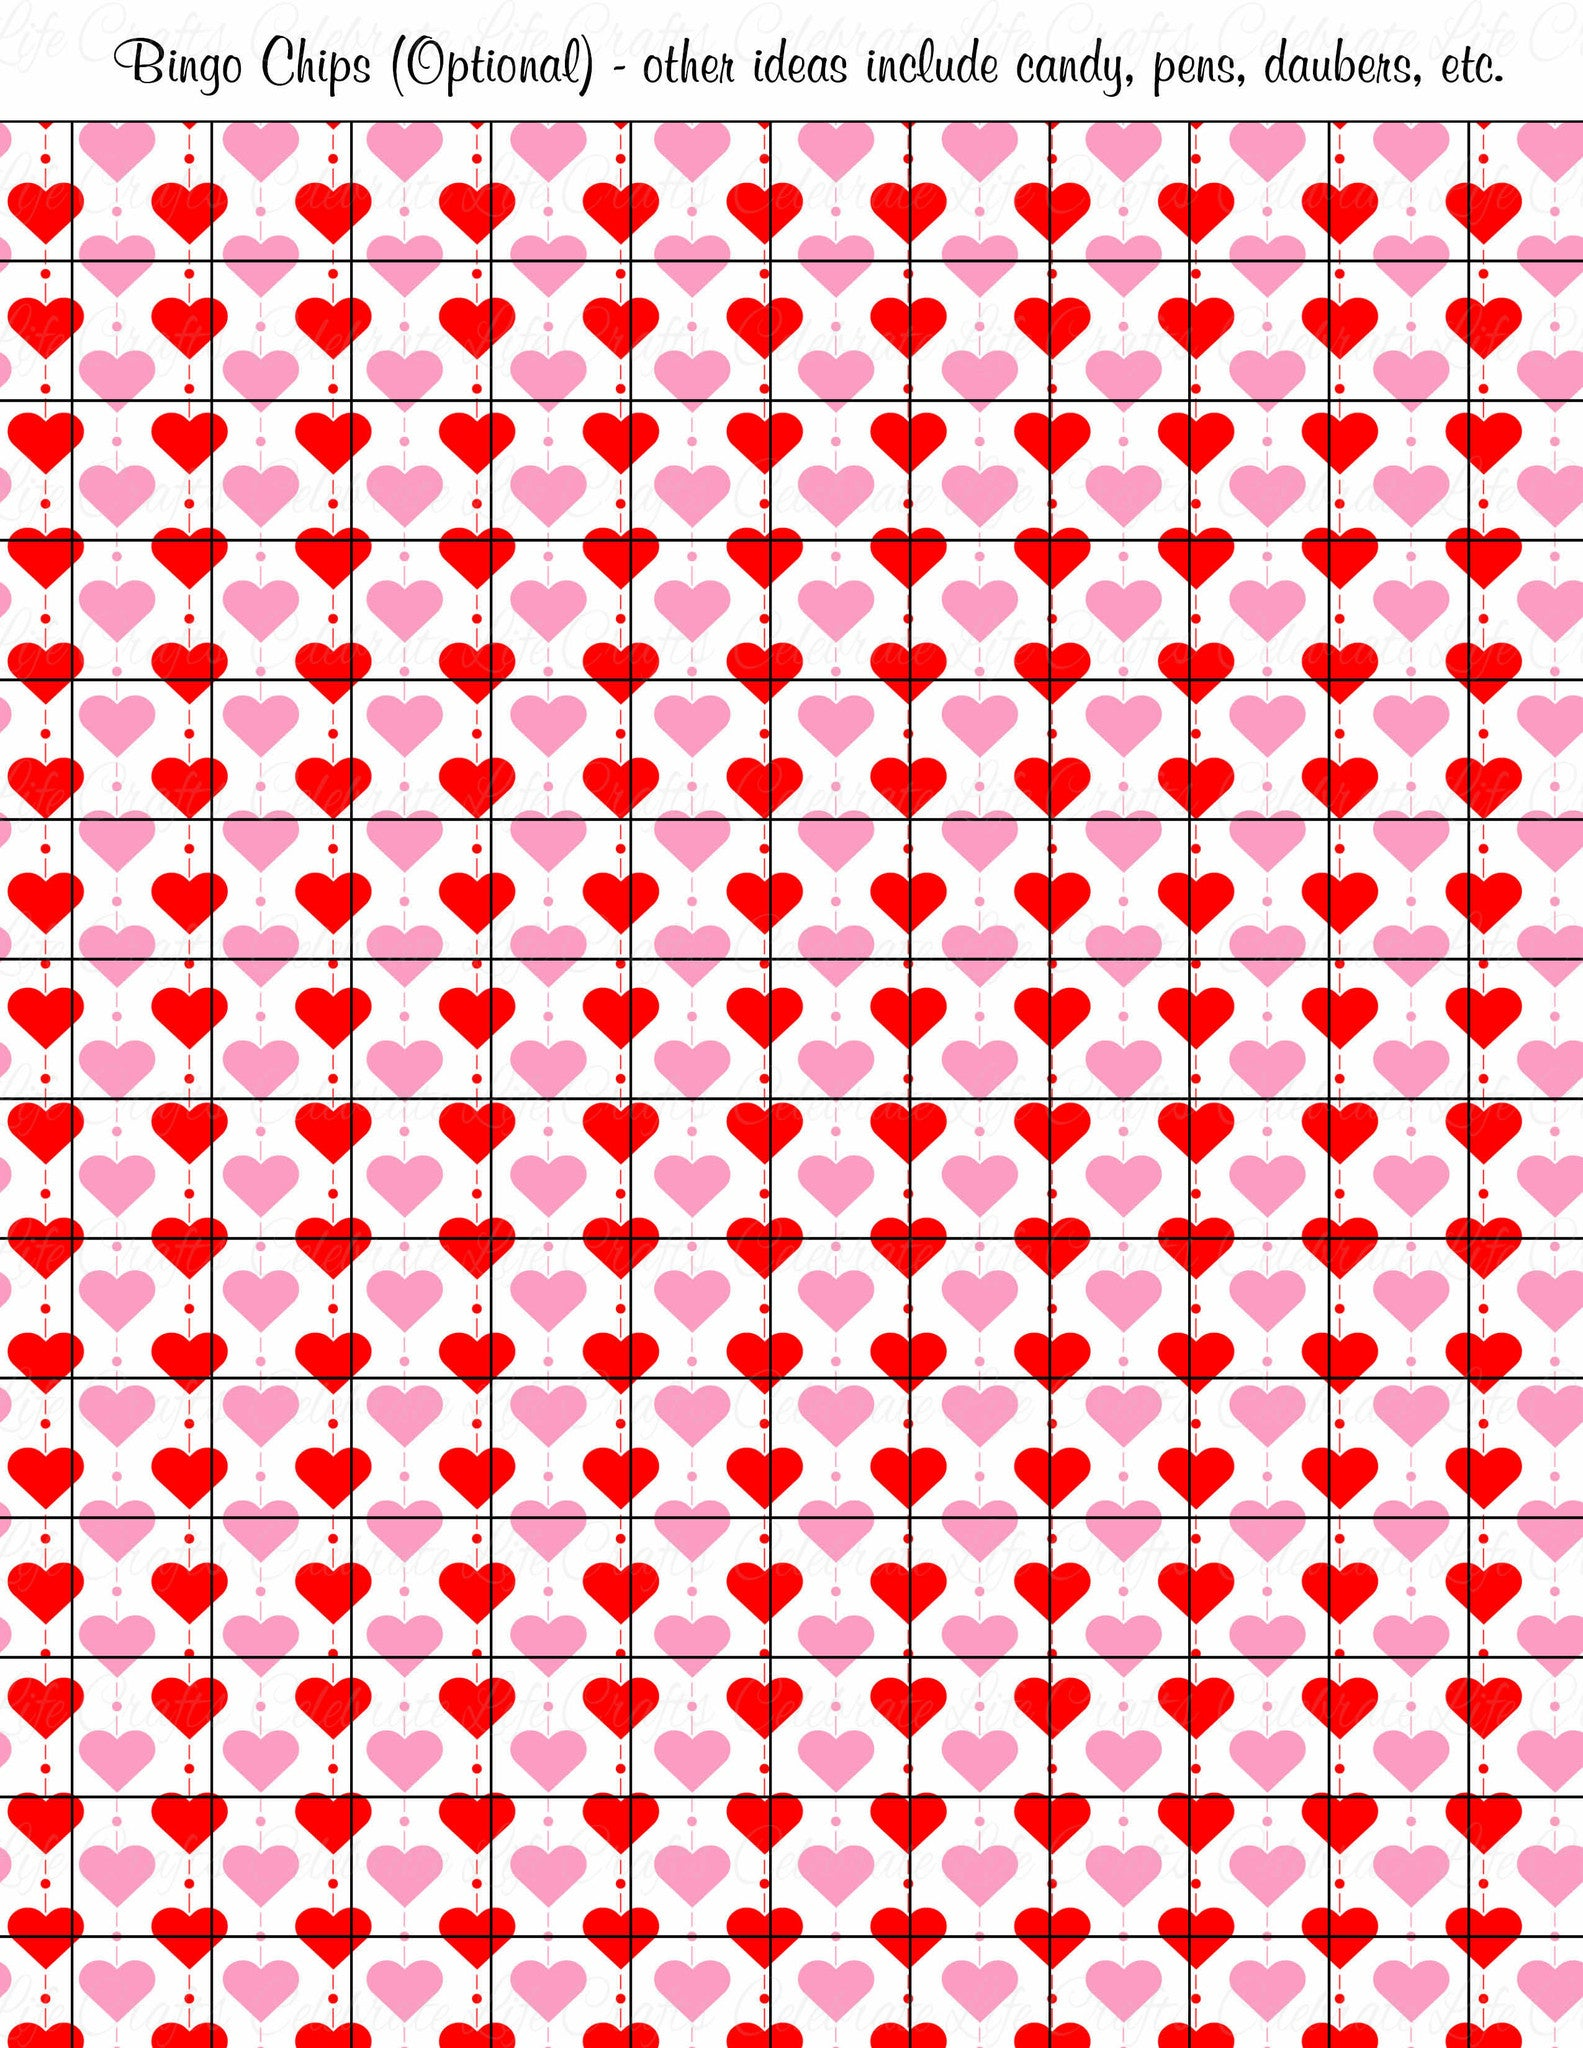 picture about Printable Bingo Chips known as Valentine Bingo Activity Obtain for Getaway Bash Designs